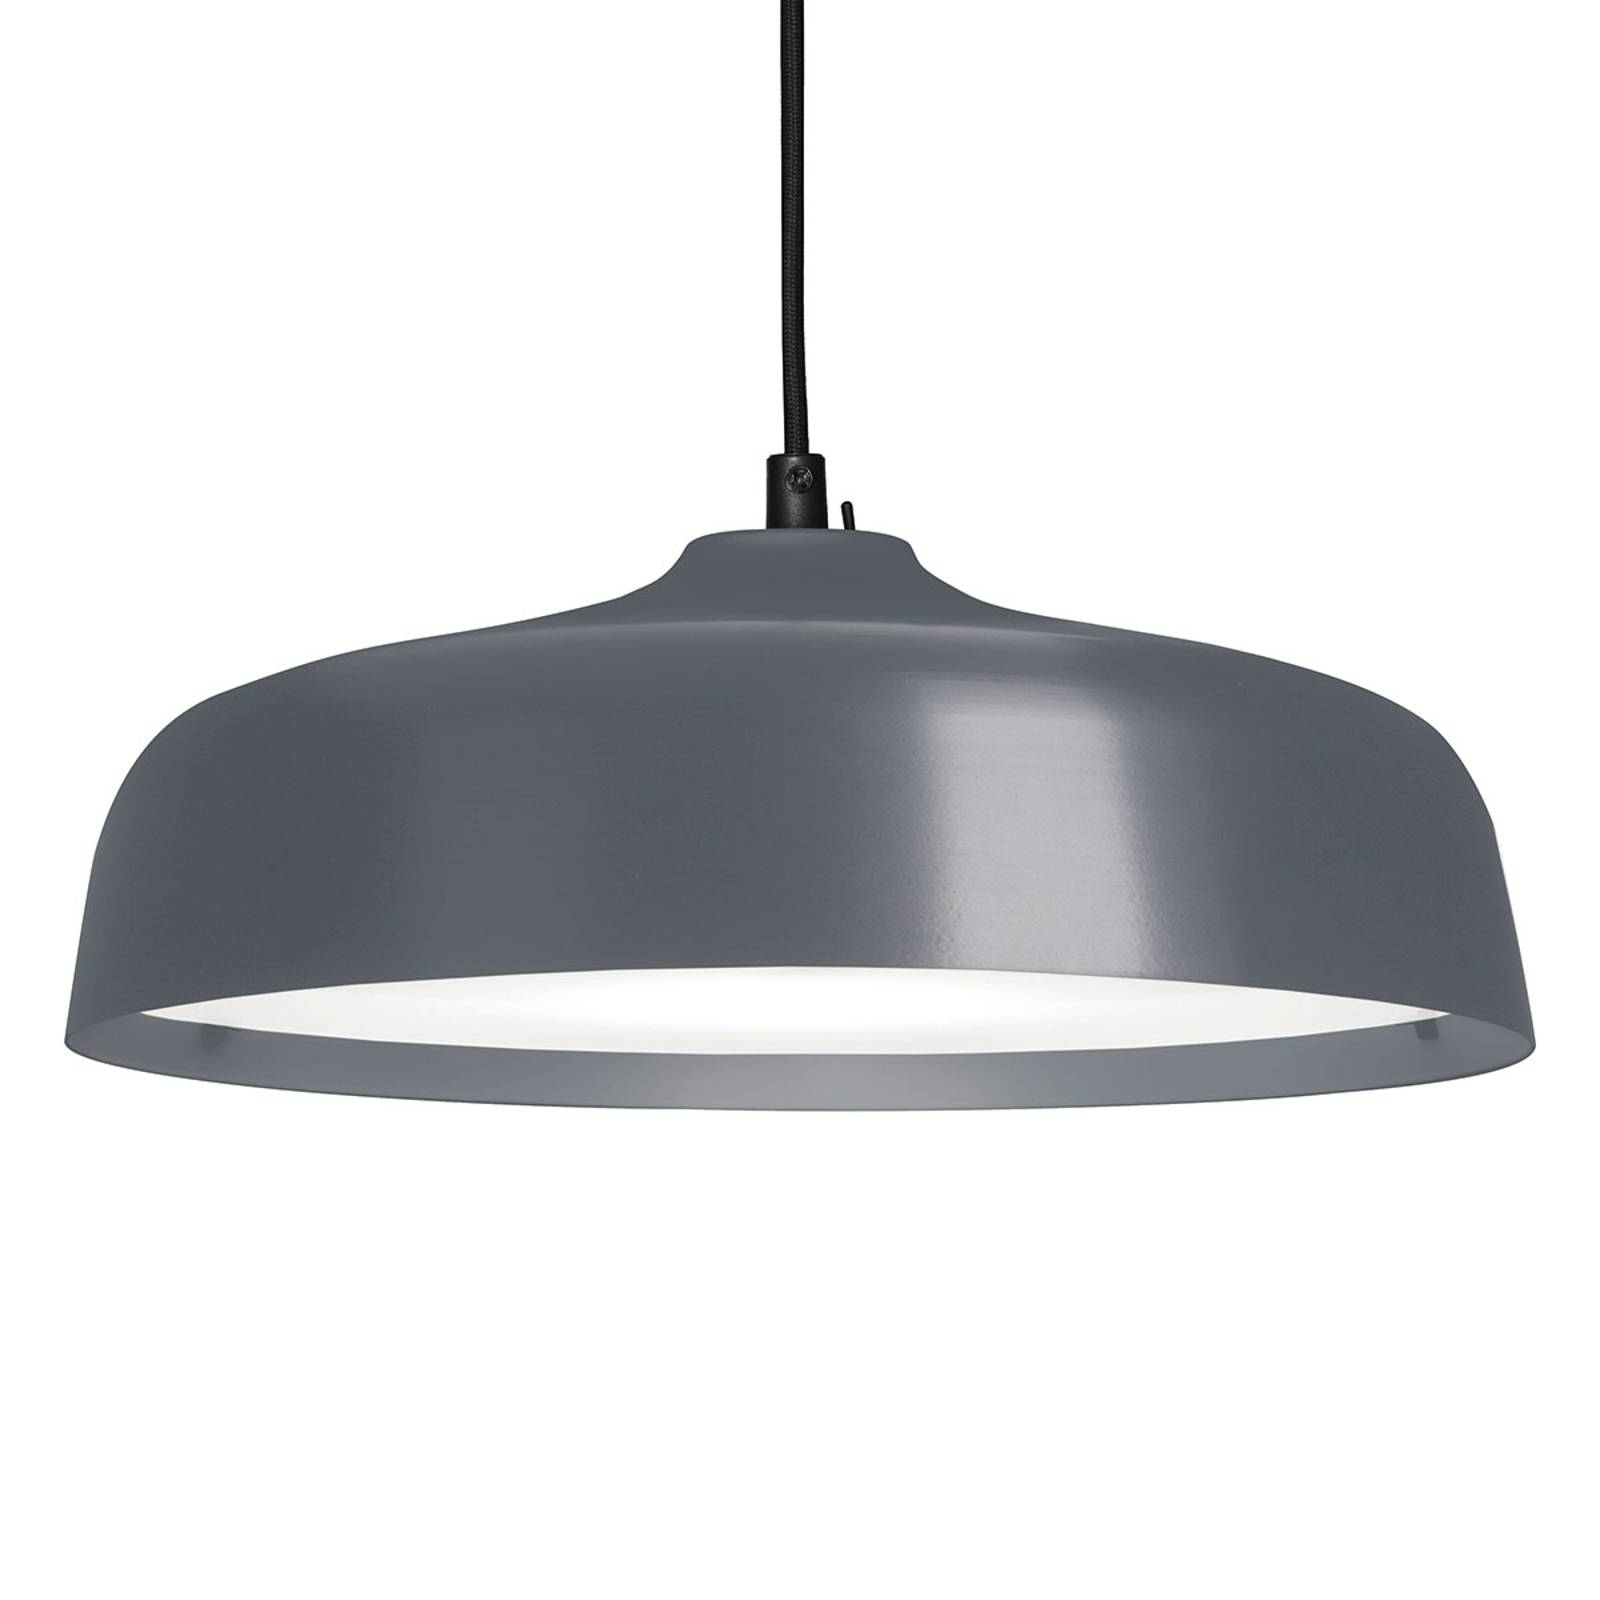 Innolux Candeo Air LED hanglamp grafiet